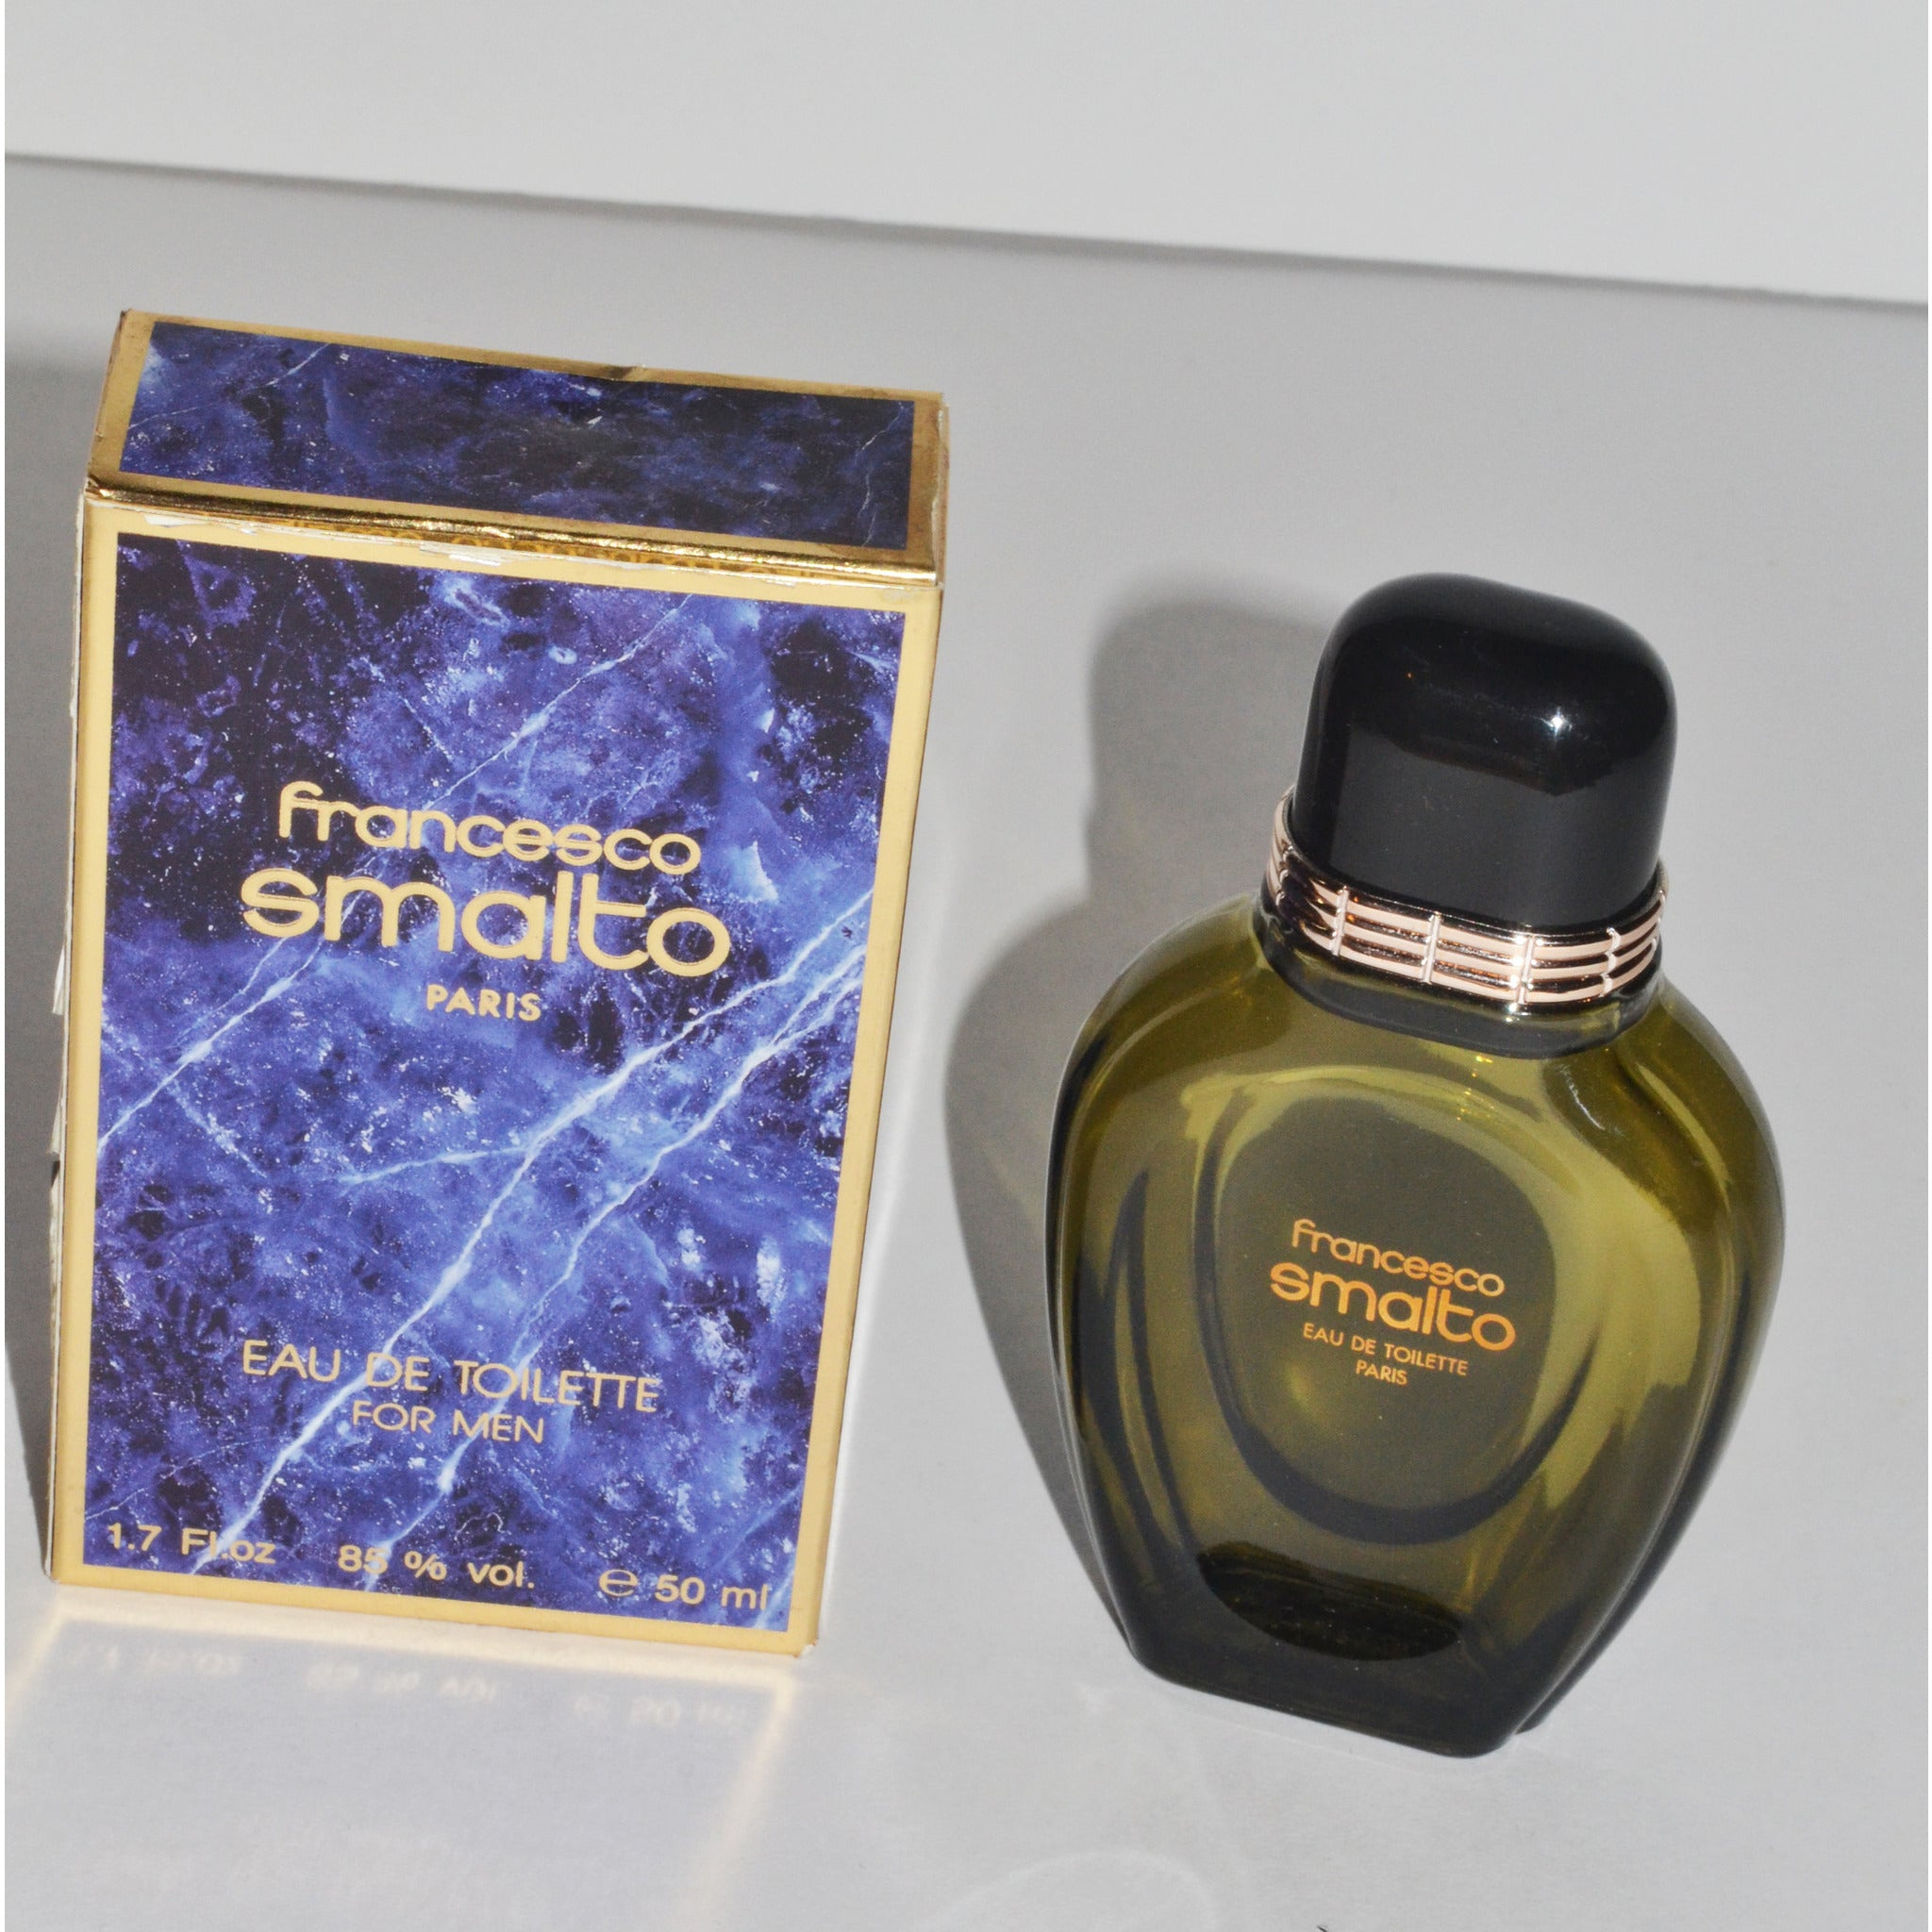 Vintage Francesco Smalto Eau De Toilette